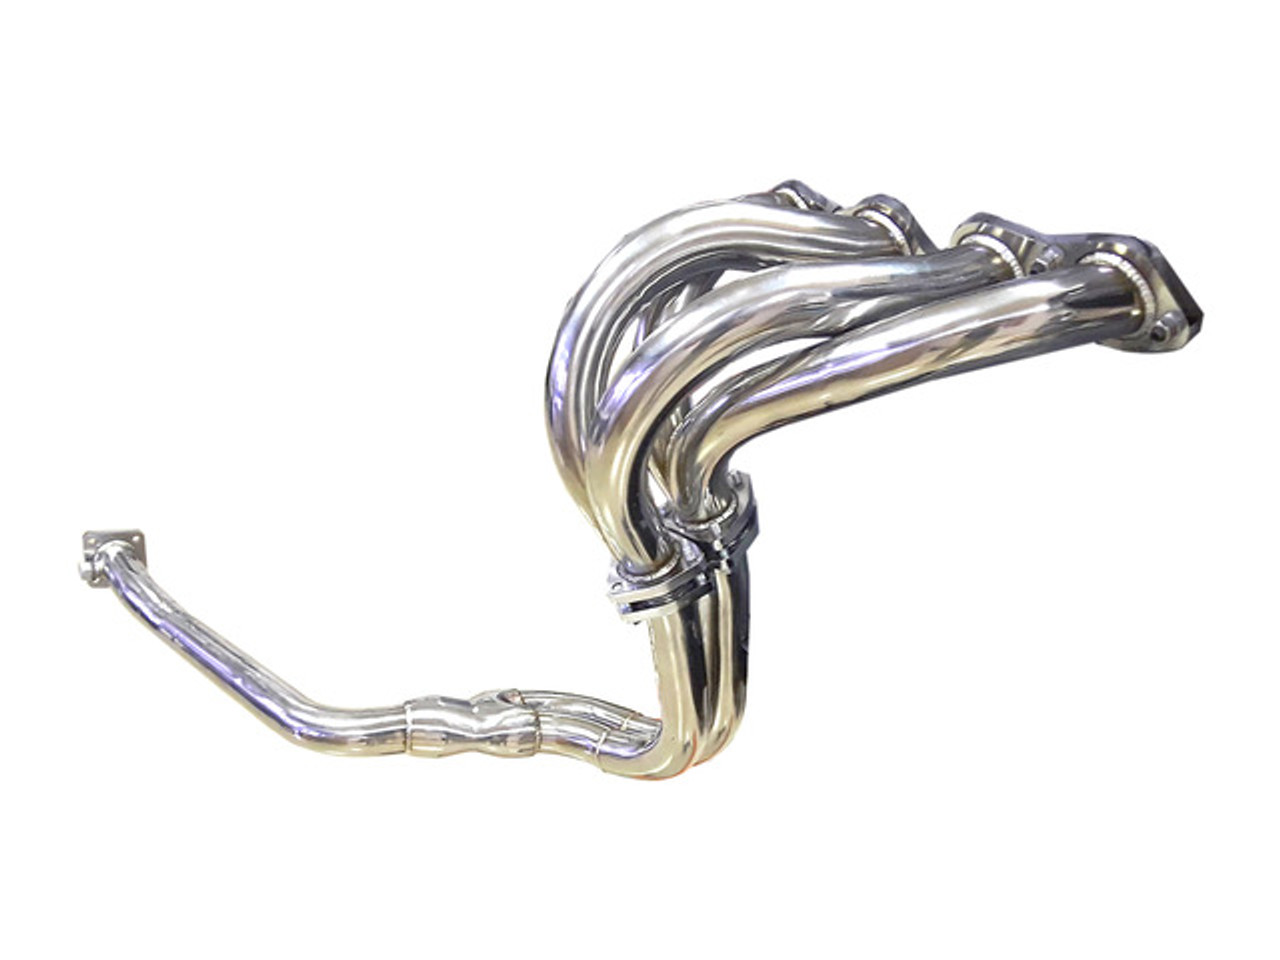 Stainless Steel Abarth style header - Auto Ricambi FIAT Spider 2000 and Pininfarina - 1980-1985